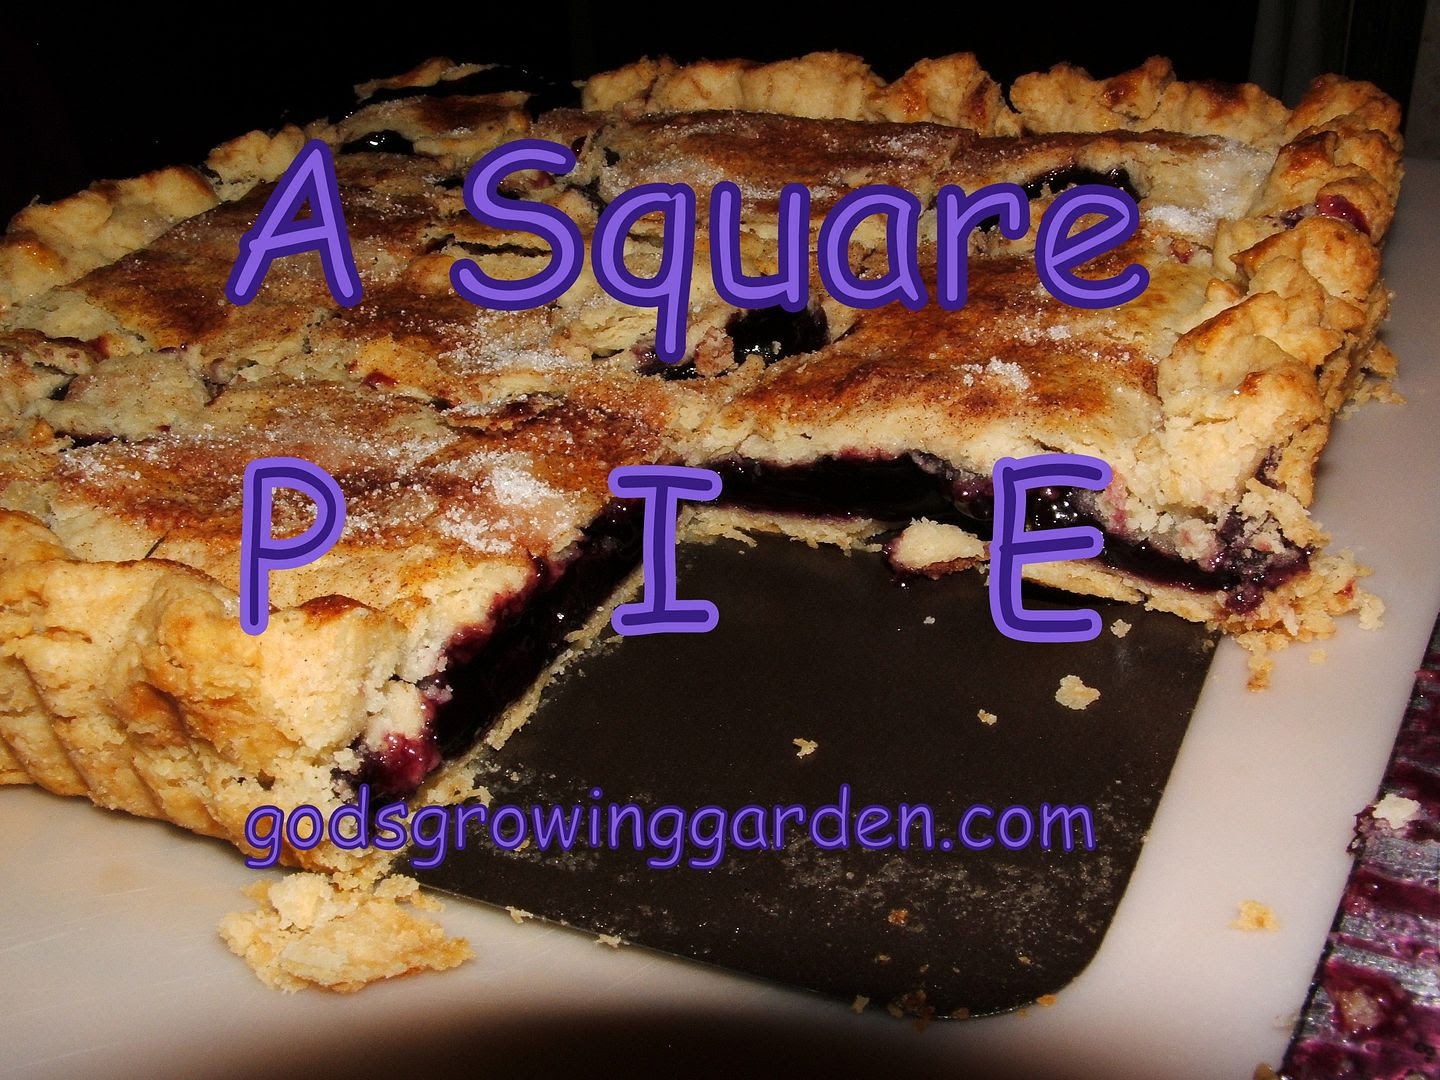 Square Pie by Angie Ouellette-Tower for godsgrowinggarden.com photo 012_zpsd37e1d67.jpg